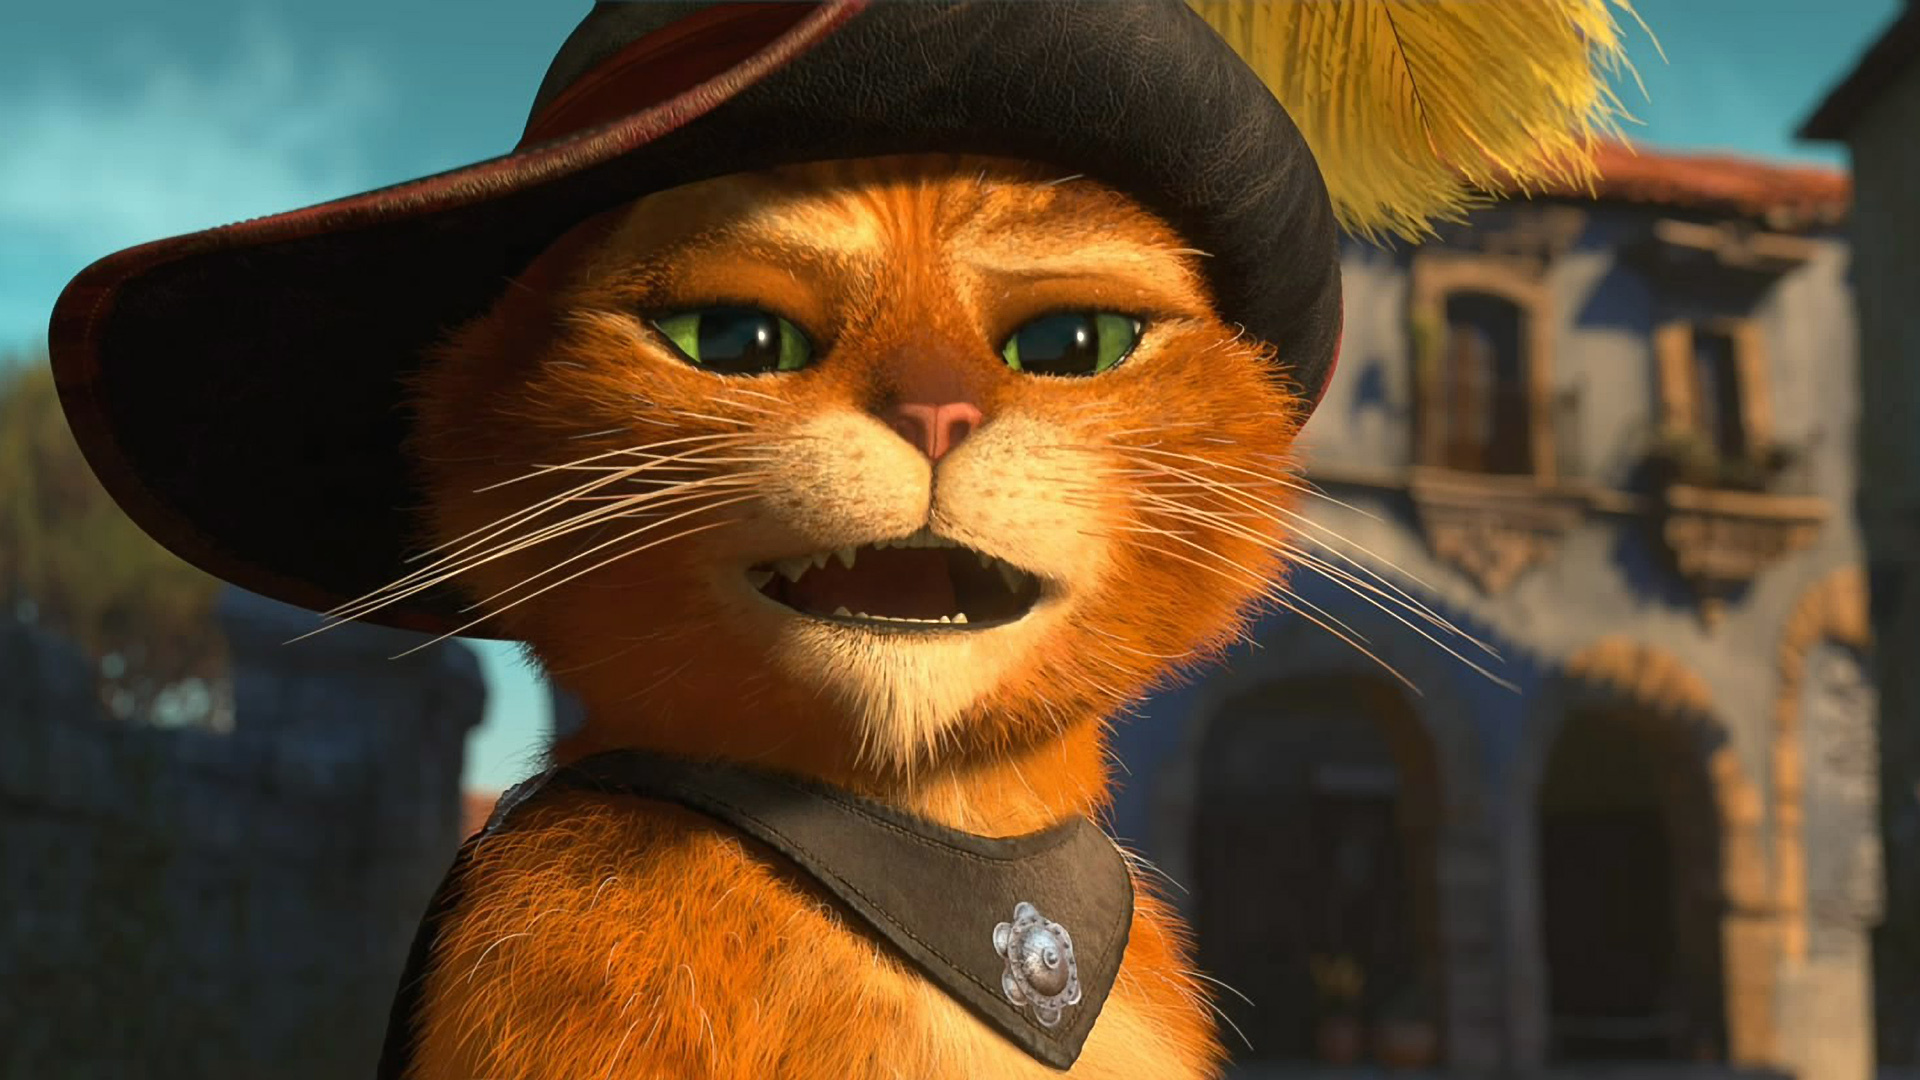 Cute Adventure Is Out There Wallpapers Puss In Boots Voiced By Antonio Banderas Hd Wallpaper